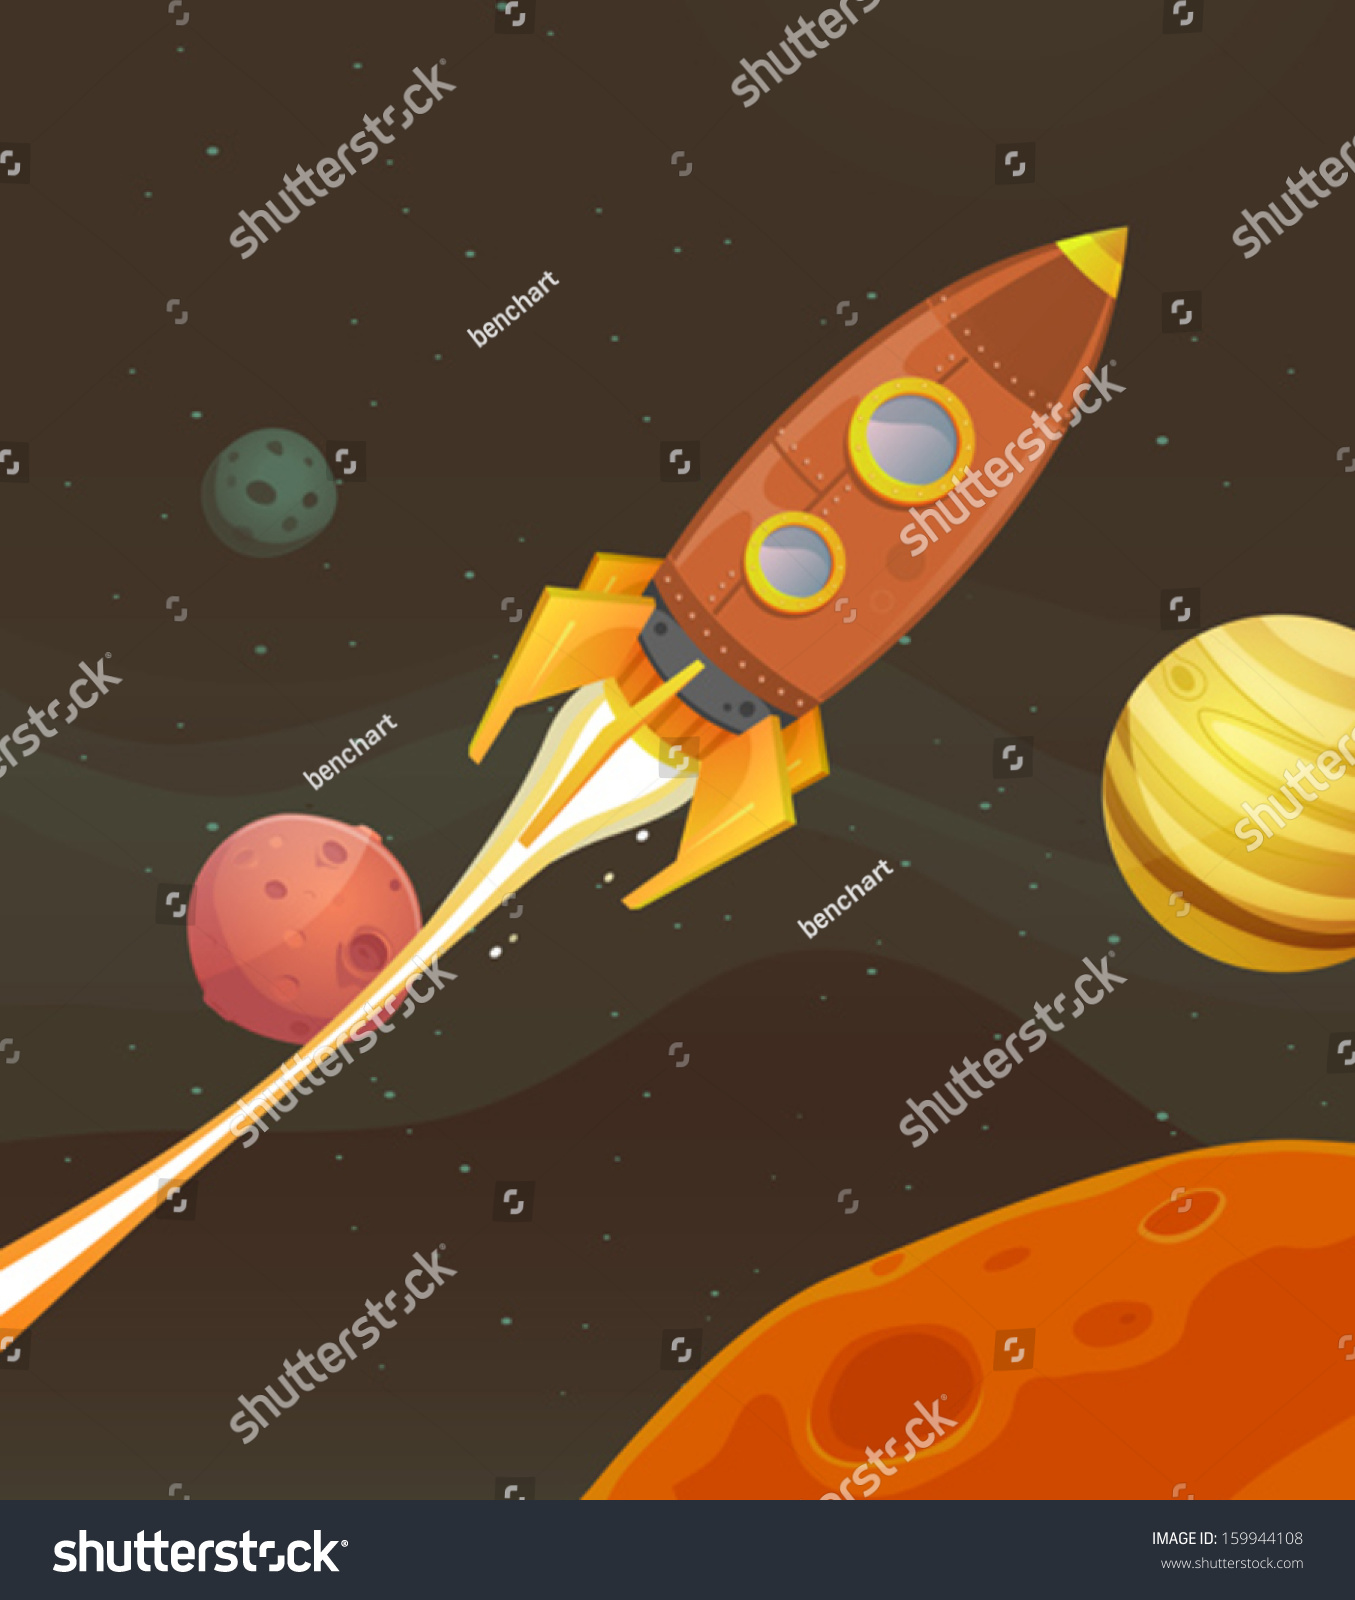 rocket ship flying through space illustration stock vector